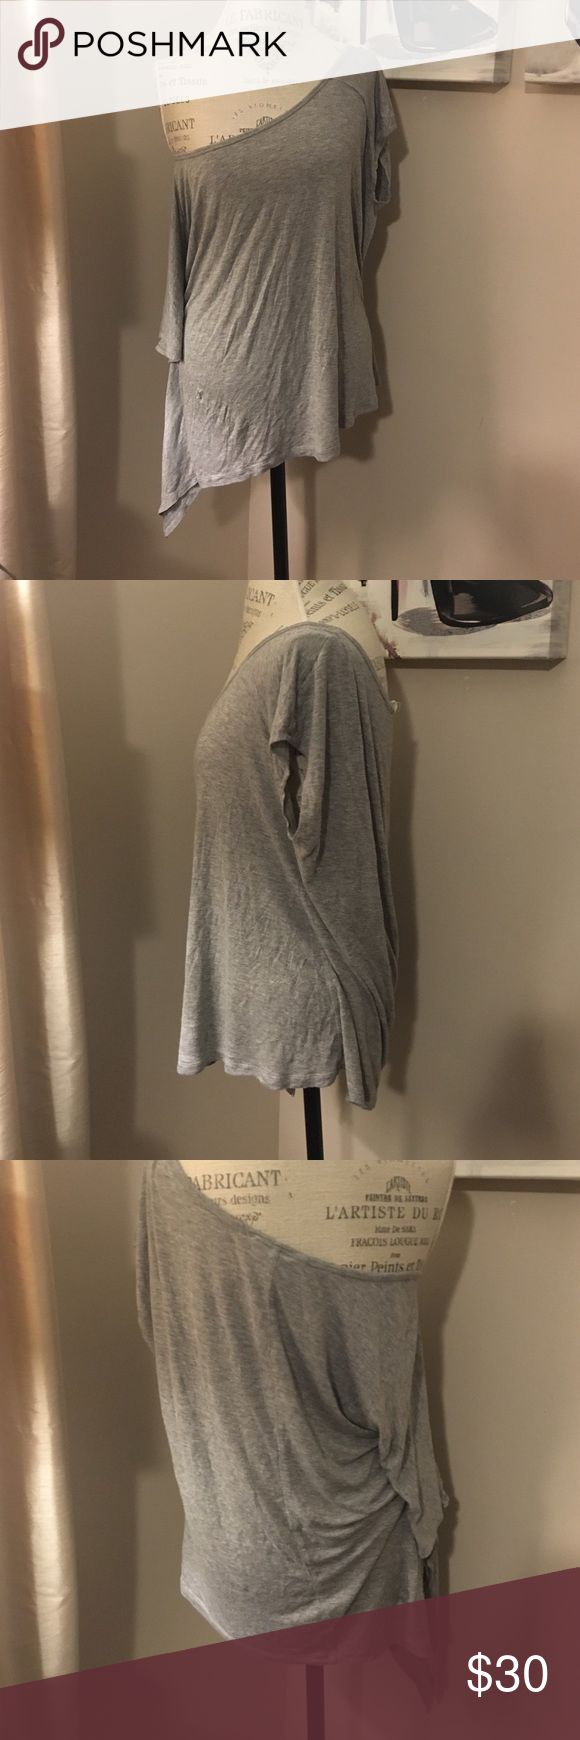 BCBGeneration top Grey off the shoulder top. Worn twice. In mint condition. BCBGeneration Tops